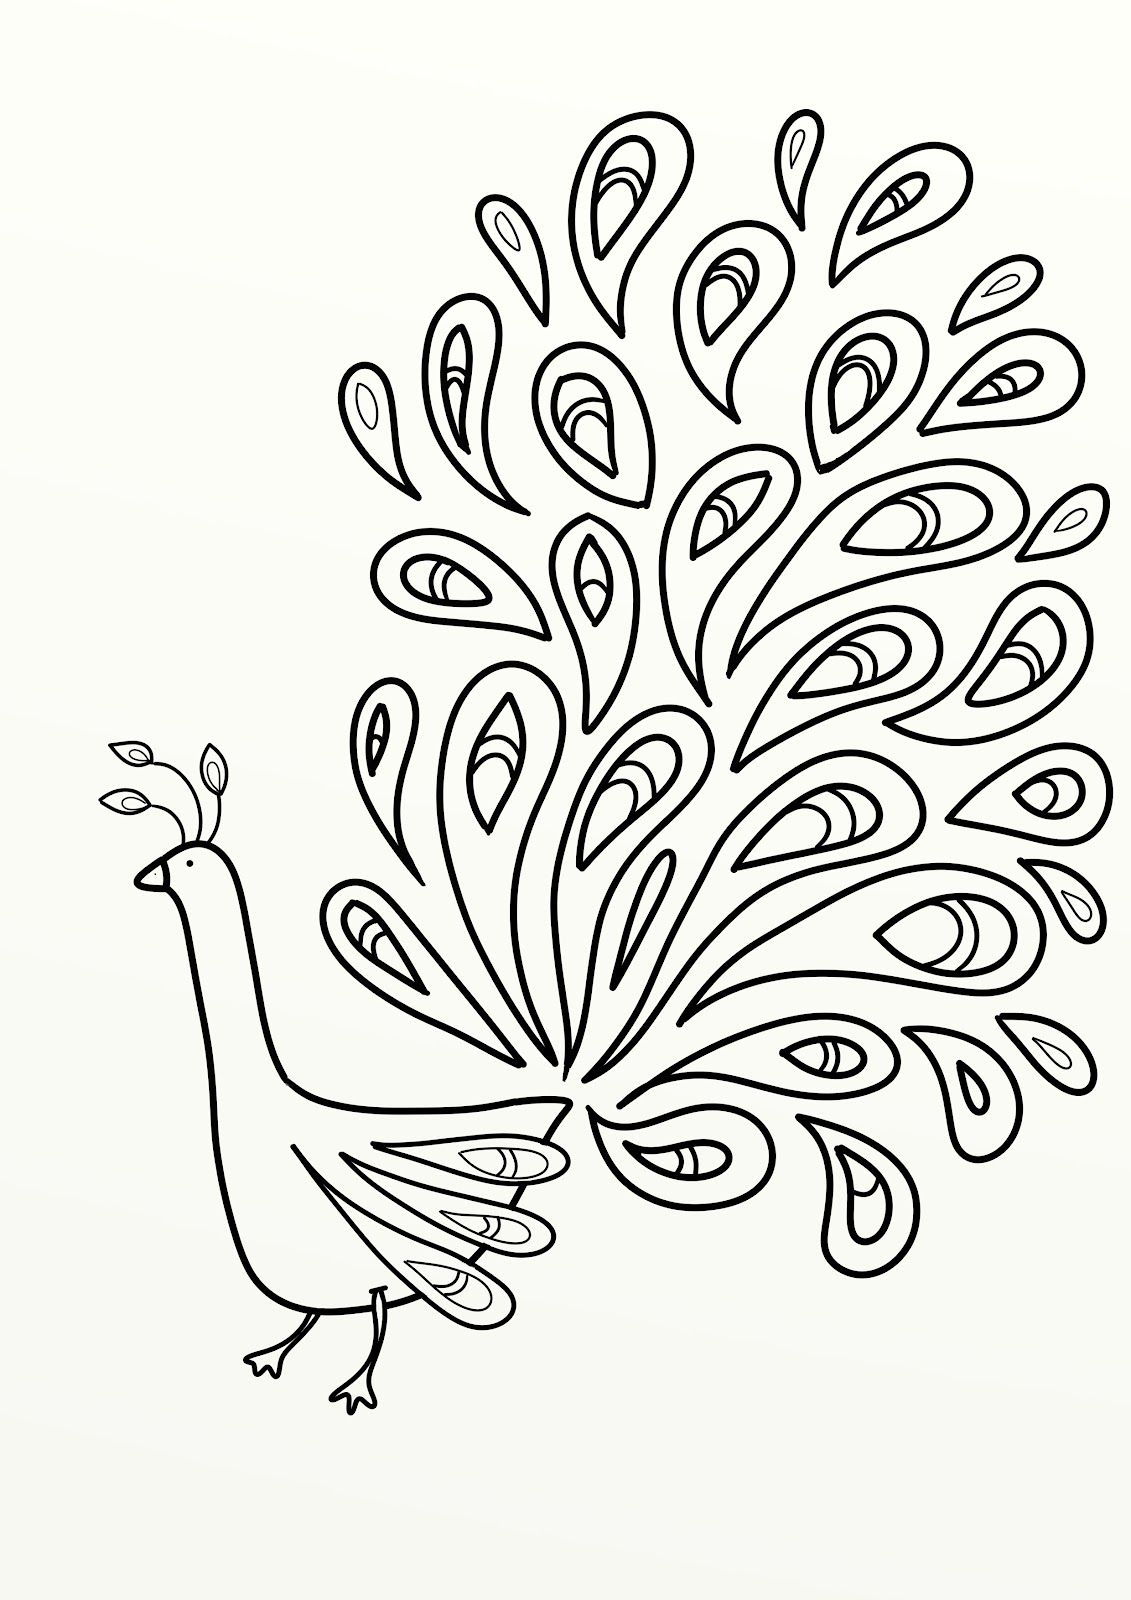 Printable Peacock Coloring Pictures